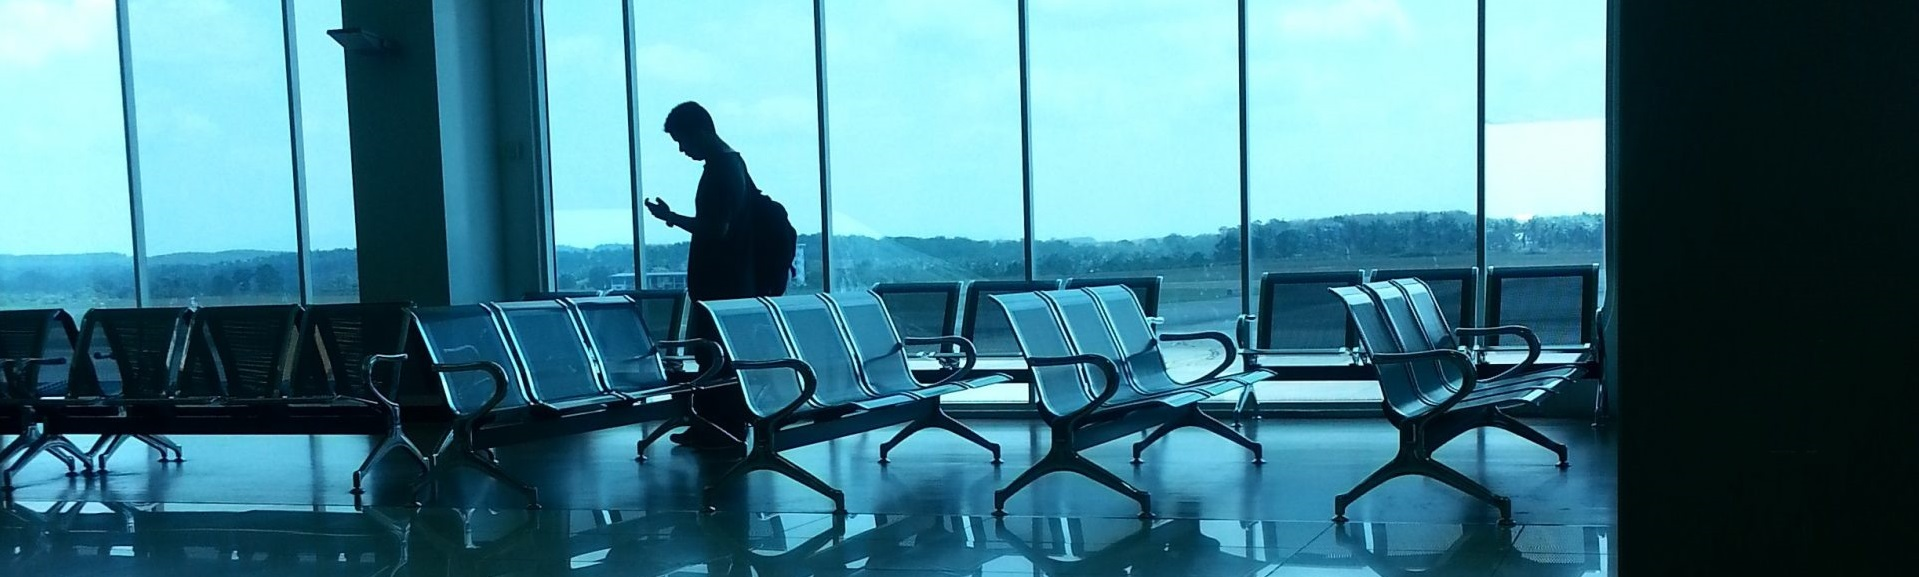 Man's silhouette walking by empty seats at airport